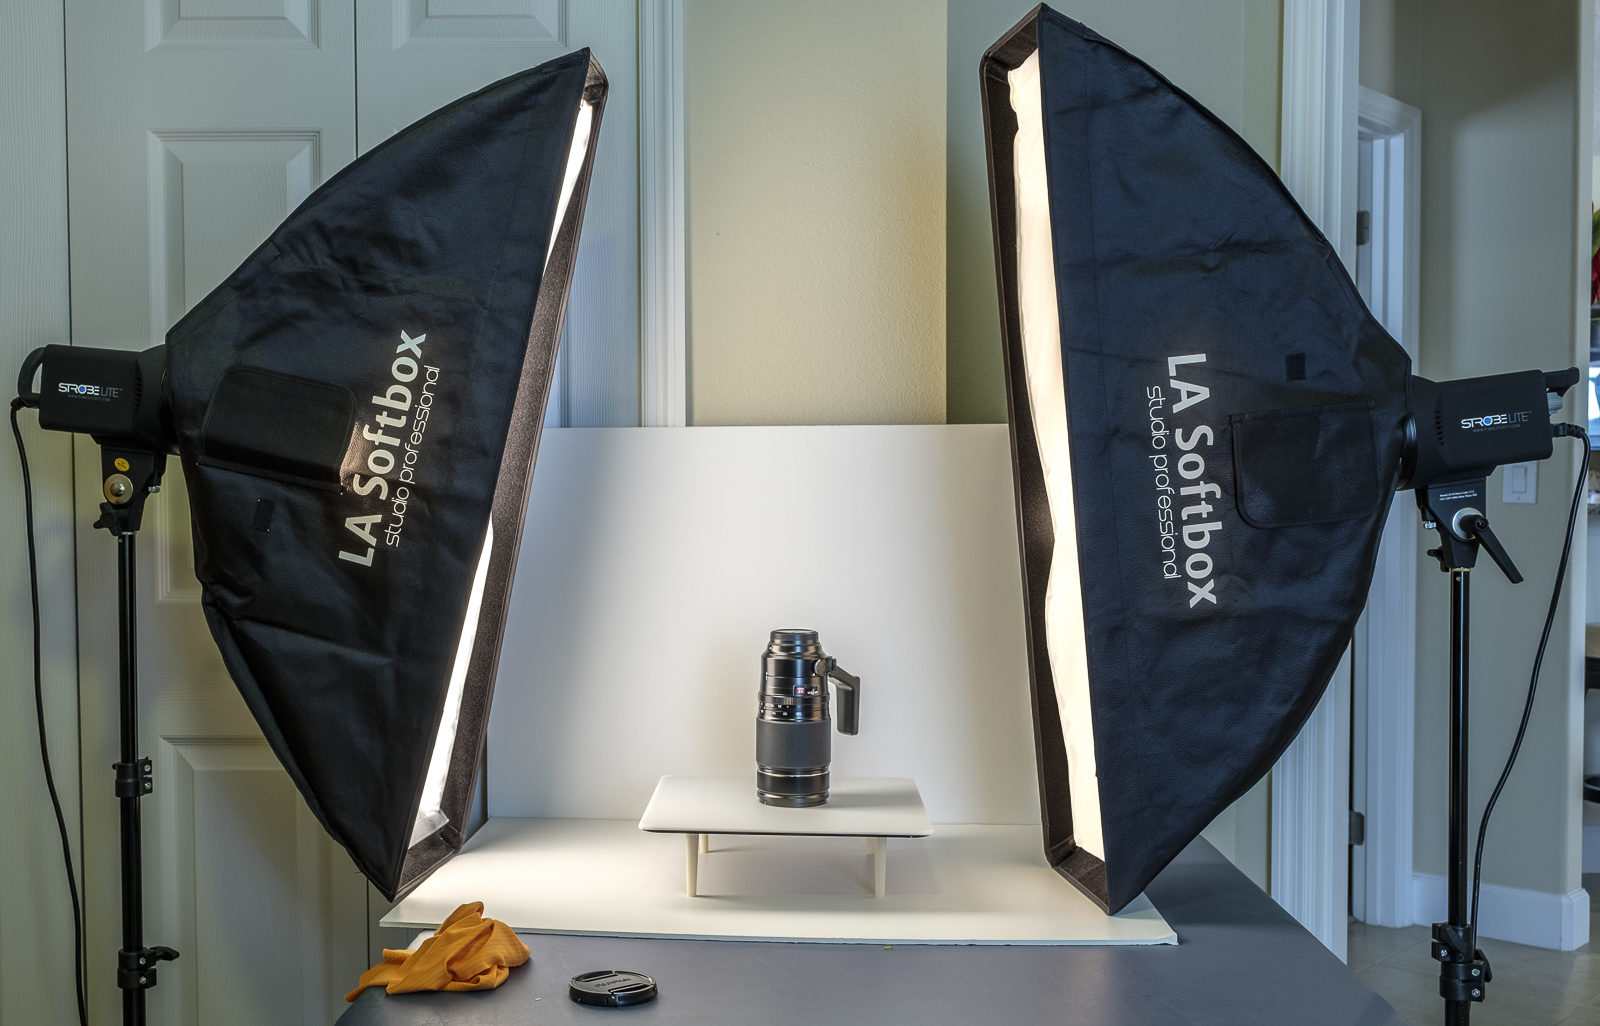 "LA Softbox 8"" c 36"" with bowen moung"